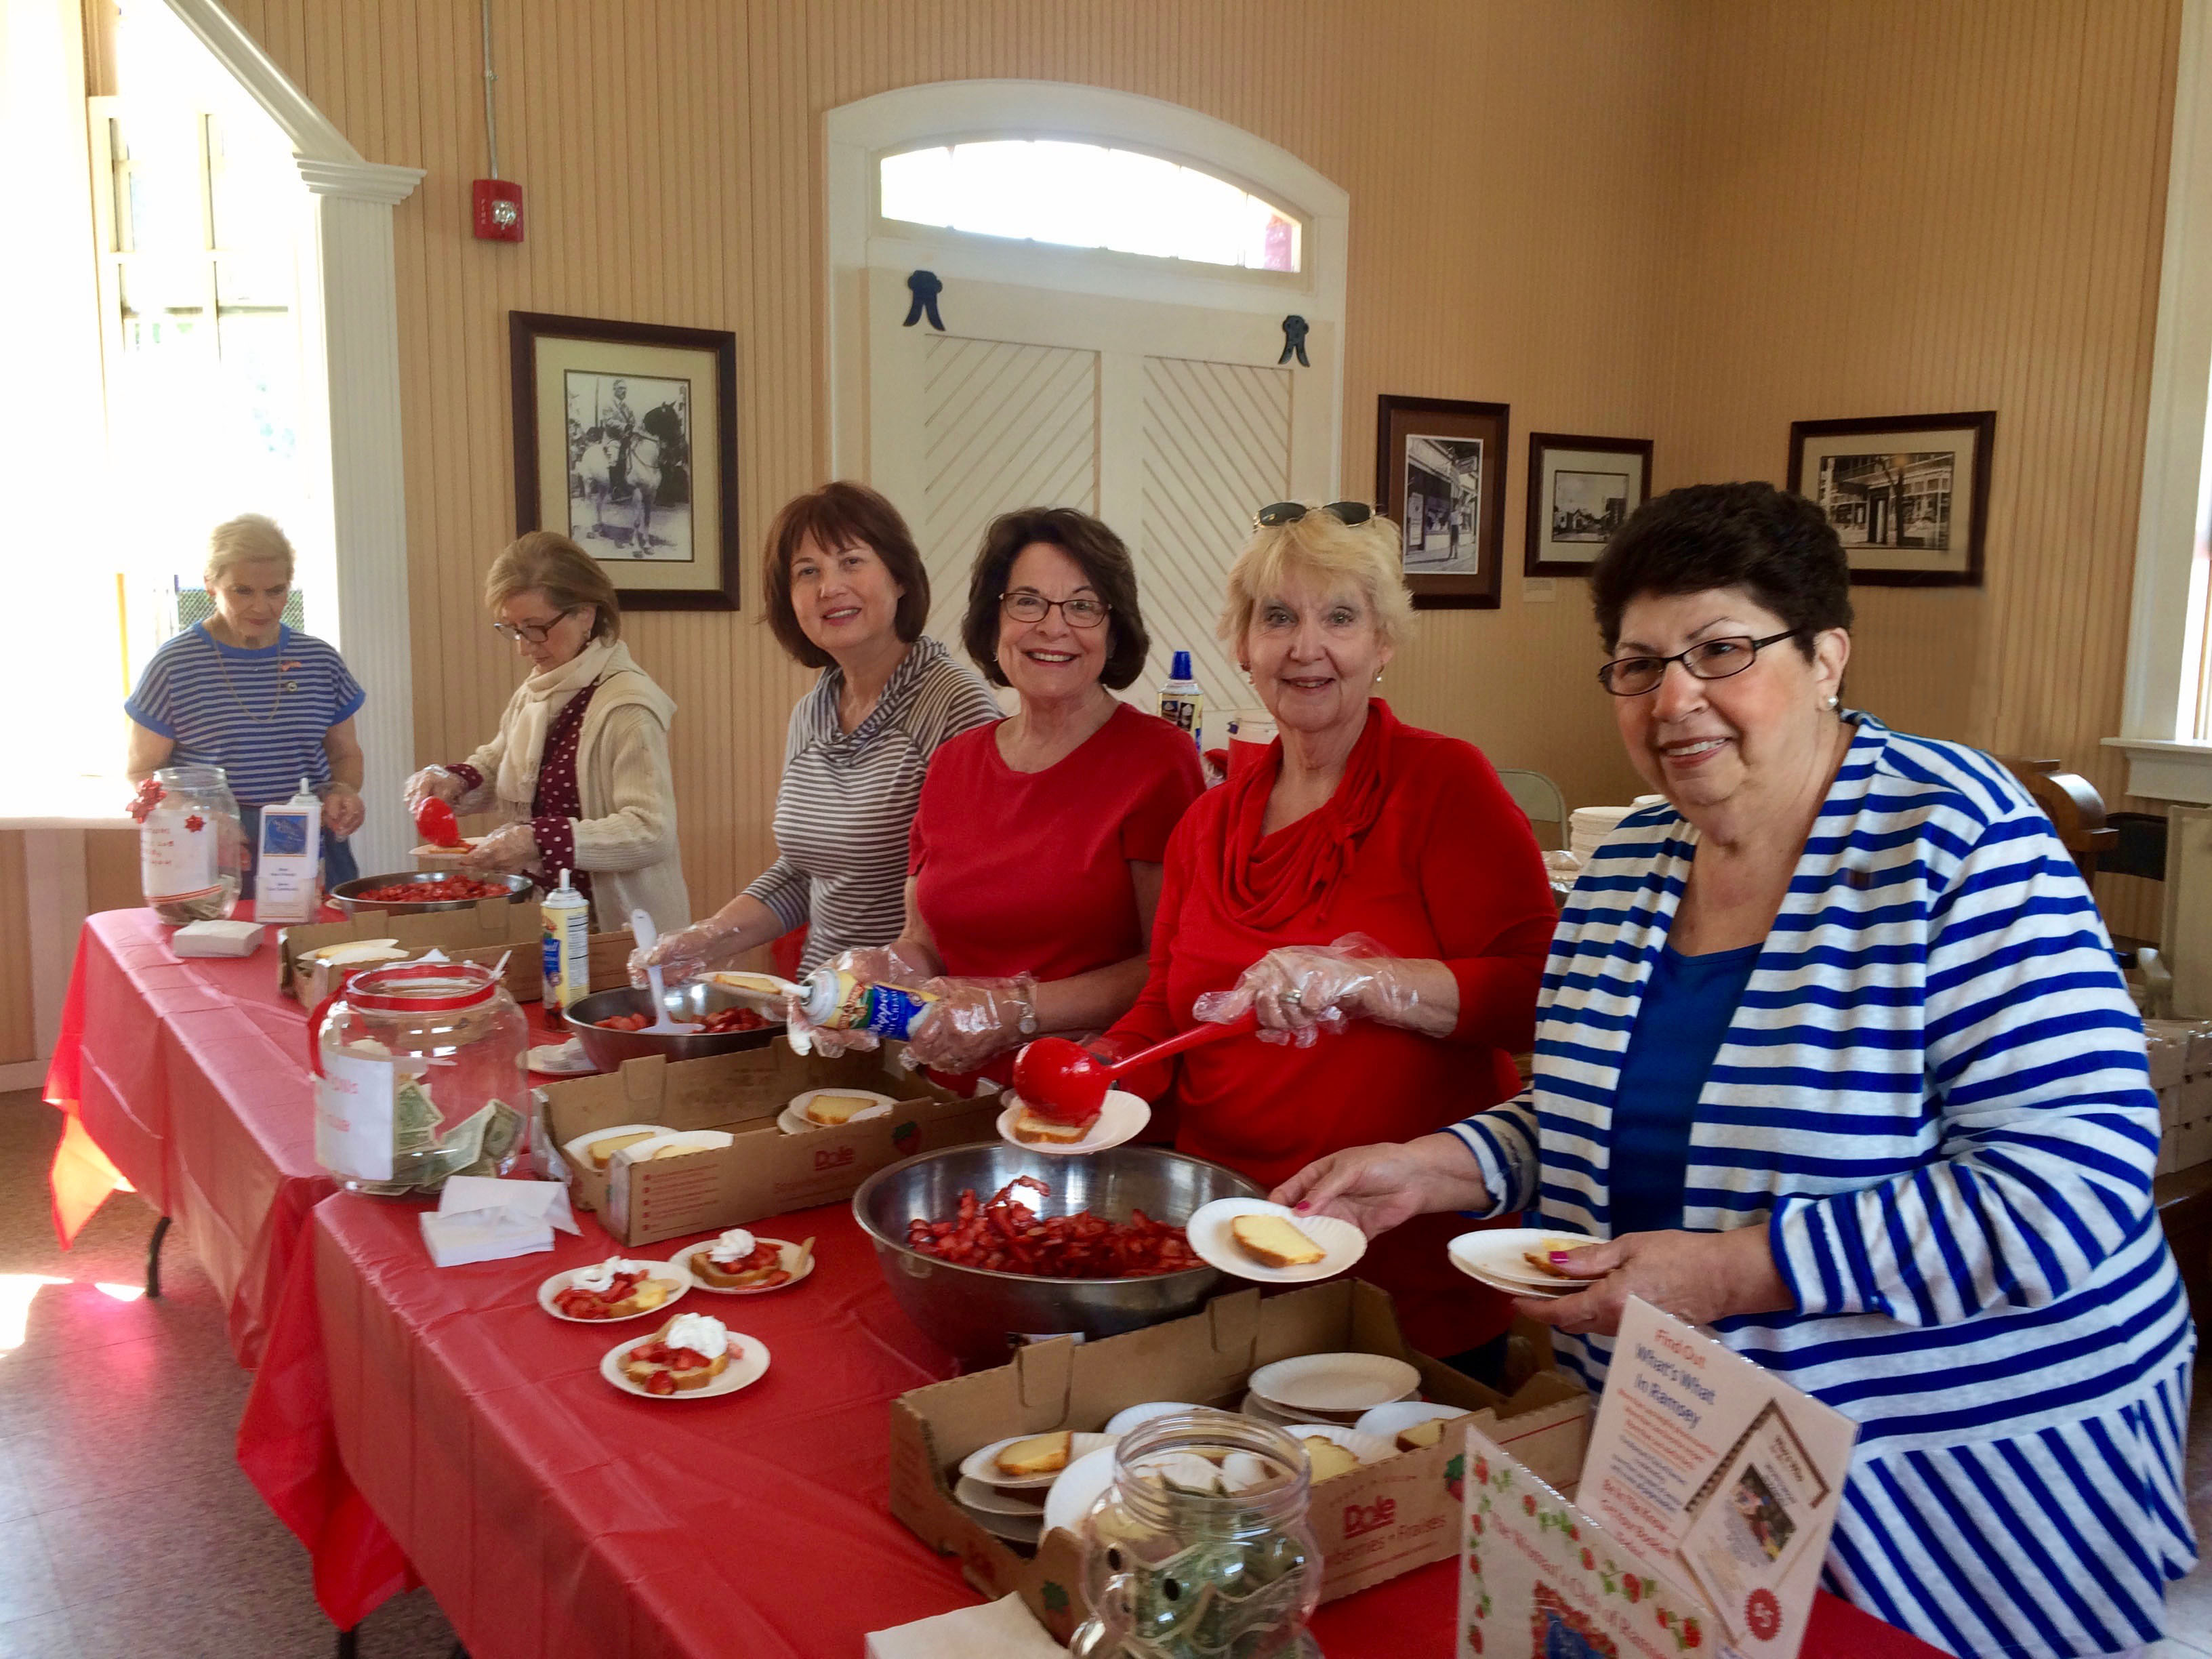 Marjorie Detweiler, Toni Small, Verda Kesedar, Dorothy Verdone, Pat Bernius, and Tina Pellicciari offer free strawberry shortcake at the Ramsey train depot.